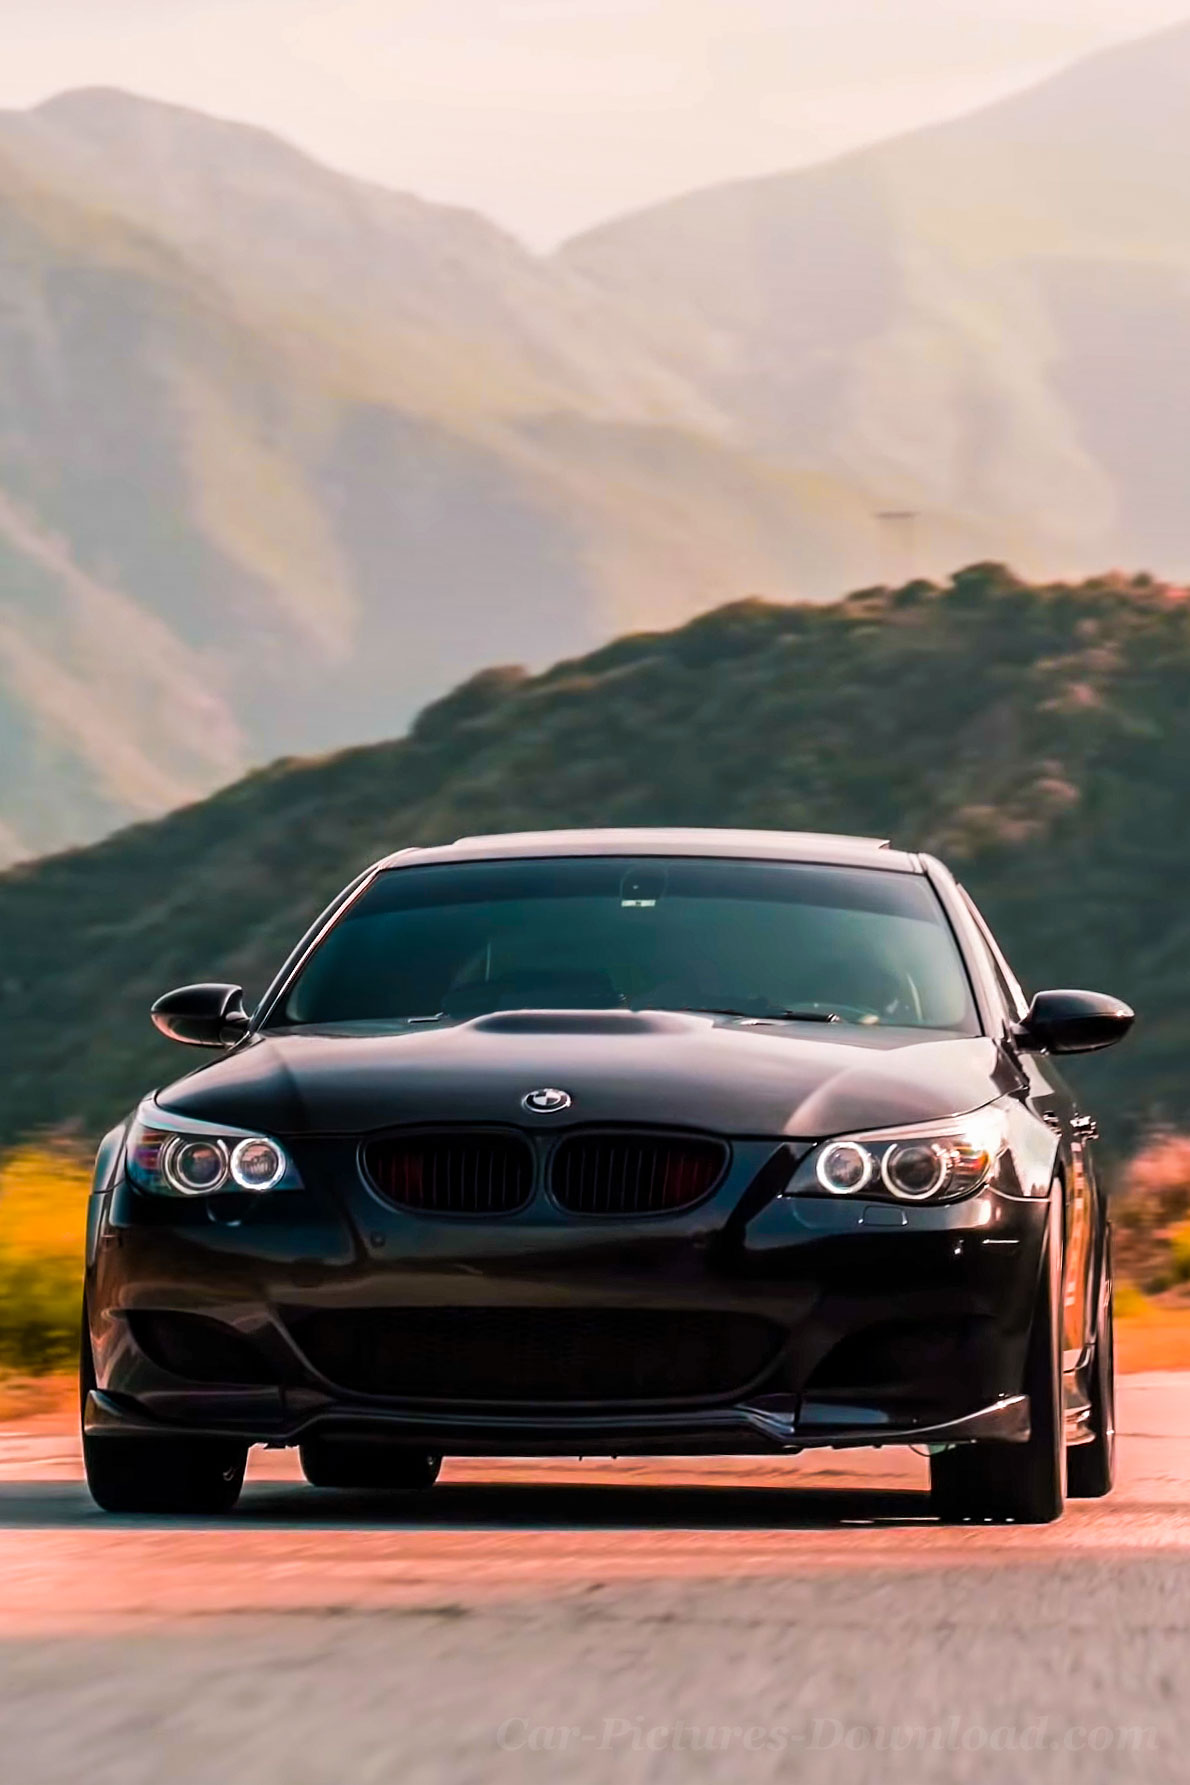 Bmw M5 Wallpaper Images Desktop Mobile Phones Download Free